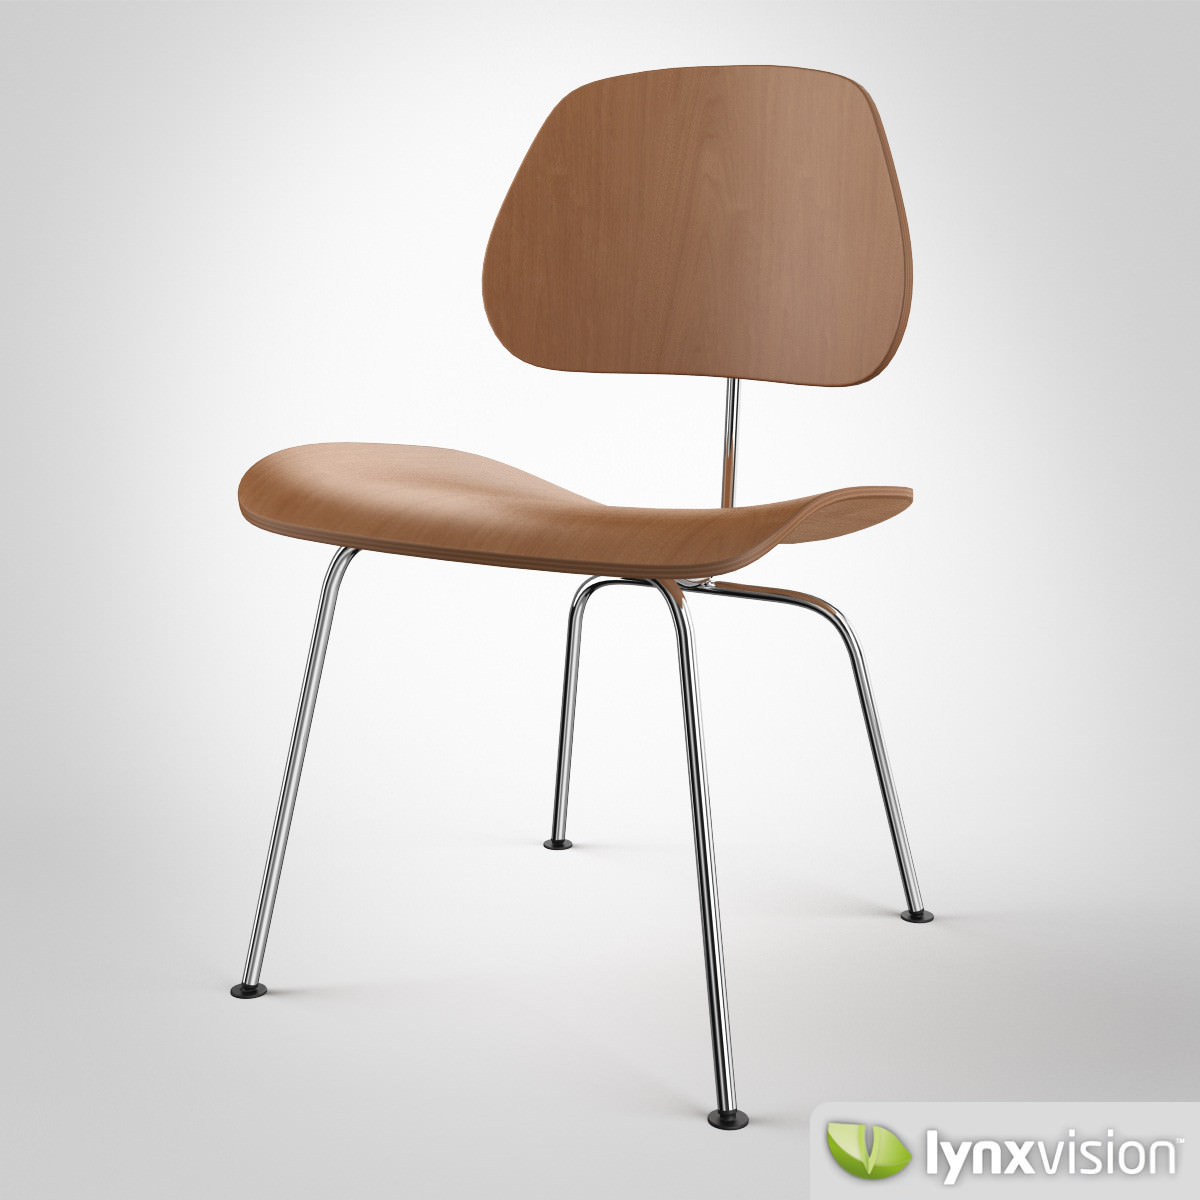 Dcm Chair By Charles Ray Eames 3d Model Cgtrader